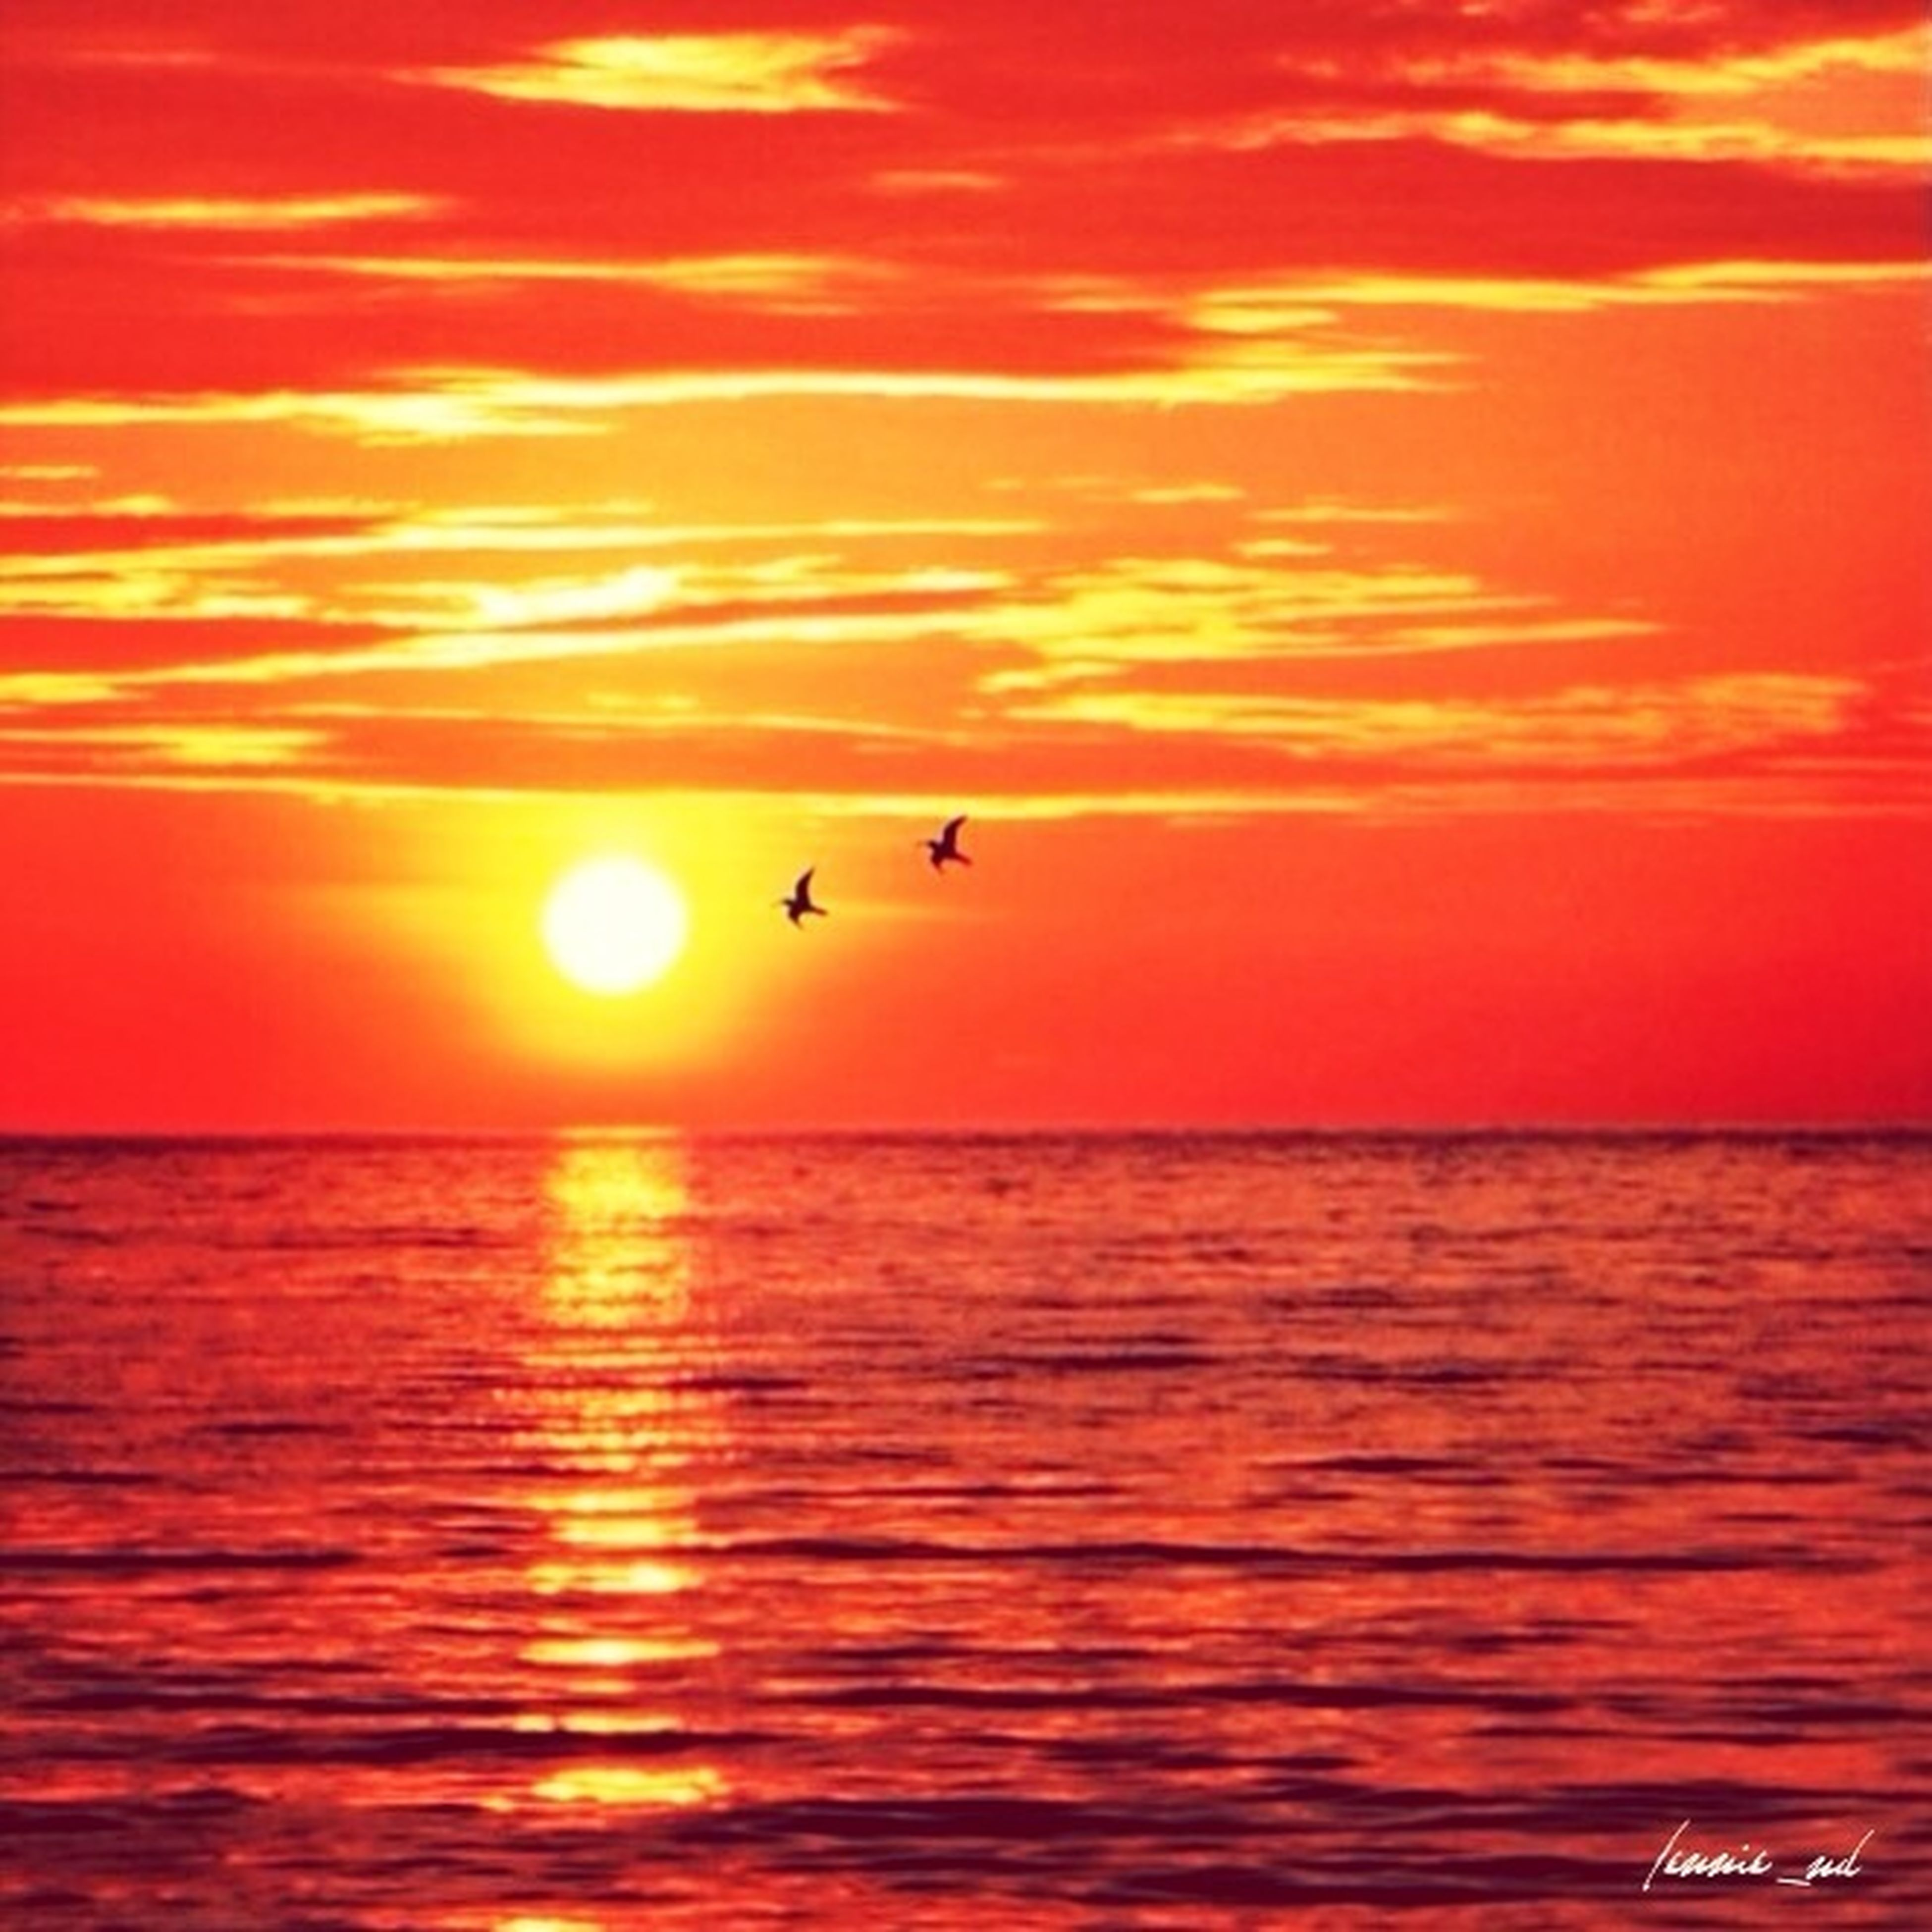 sunset, water, orange color, sun, sea, horizon over water, waterfront, scenics, bird, beauty in nature, tranquil scene, sky, tranquility, reflection, idyllic, flying, nature, rippled, animal themes, one animal